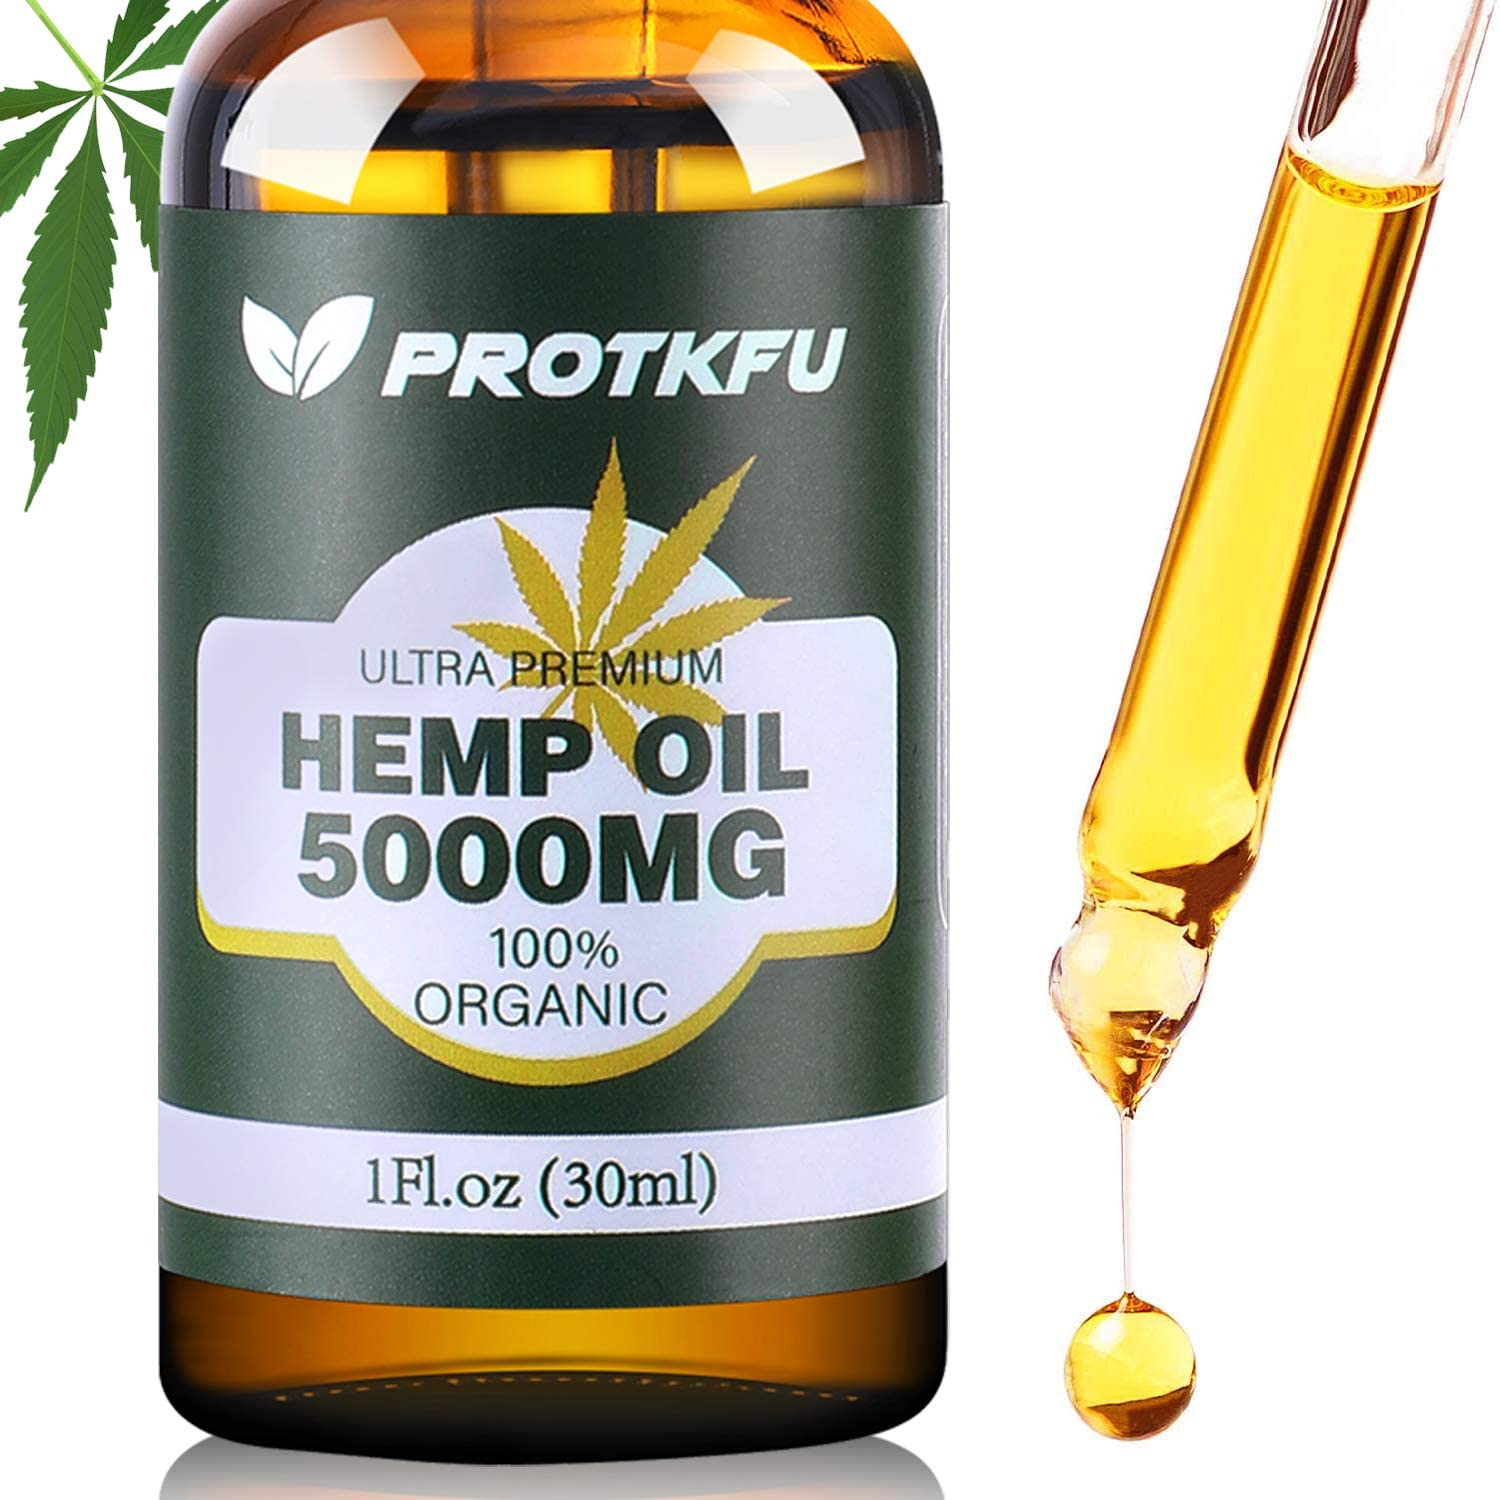 5000MG Hemp Oil for Pain, Anxiety & Stress Relief - 100% Natural Organic Hemp Extract - Rich in Vitamin & Omega, Helps with Deep Sleep Skin & Hair Health, Immune System Support